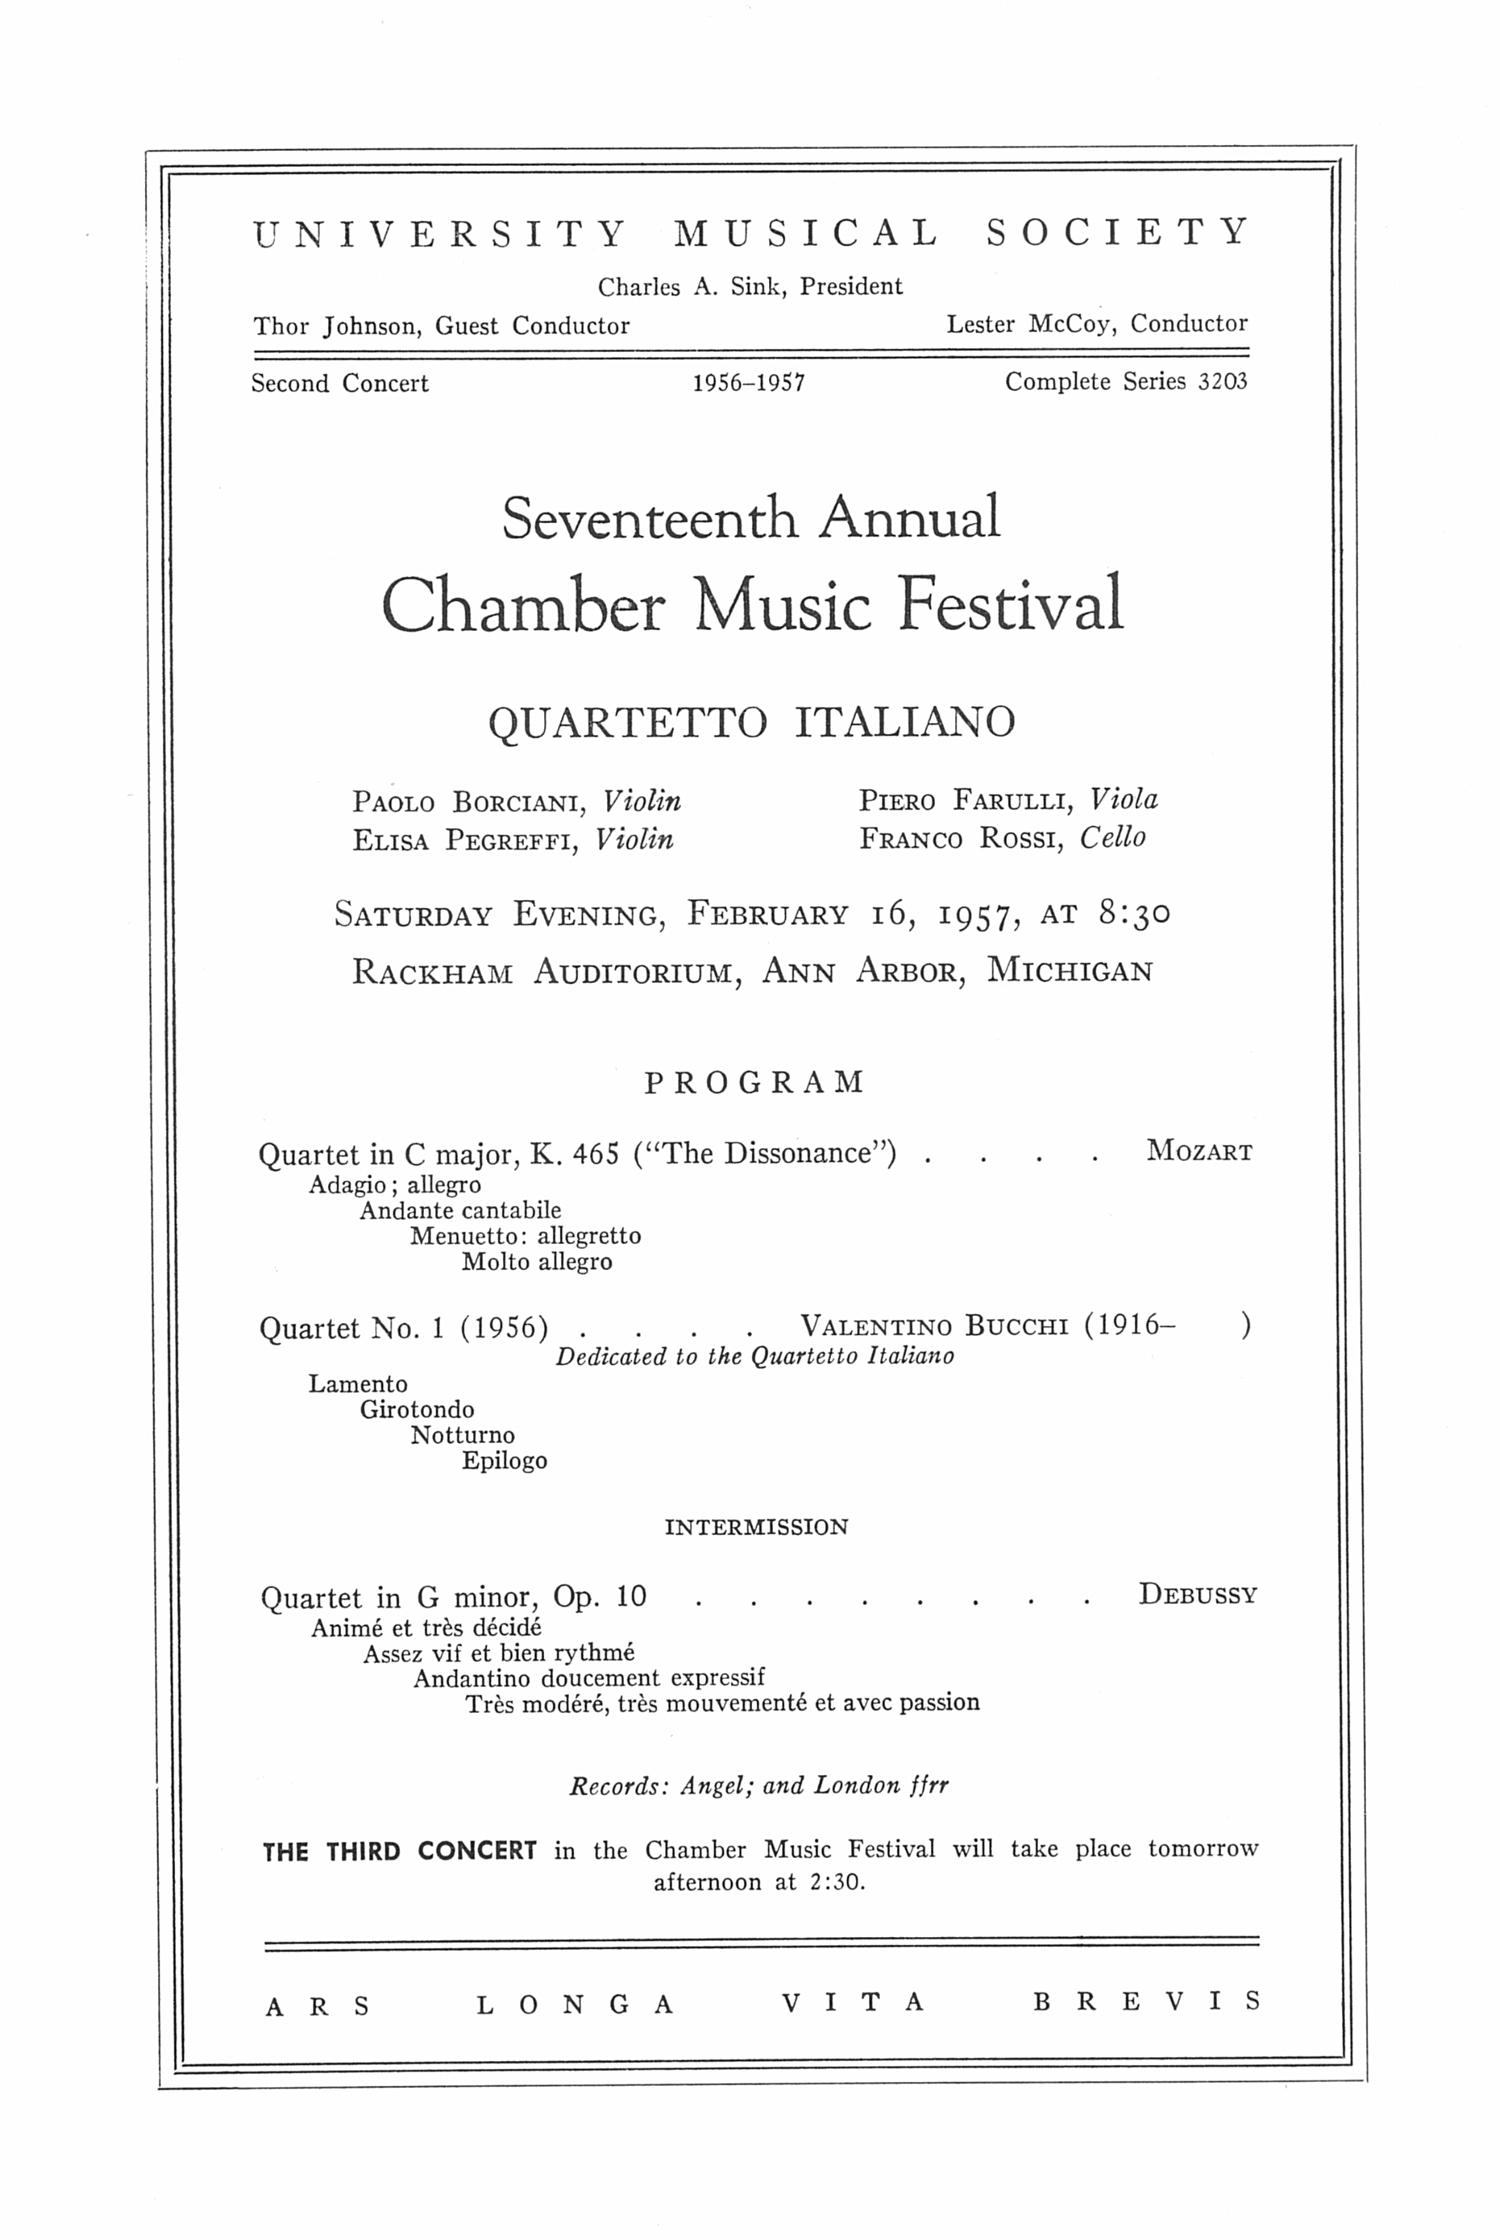 UMS Concert Program, February 16, 1957: Seventeenth Annual Chamber Music Festival -- Quartetto Italiano image